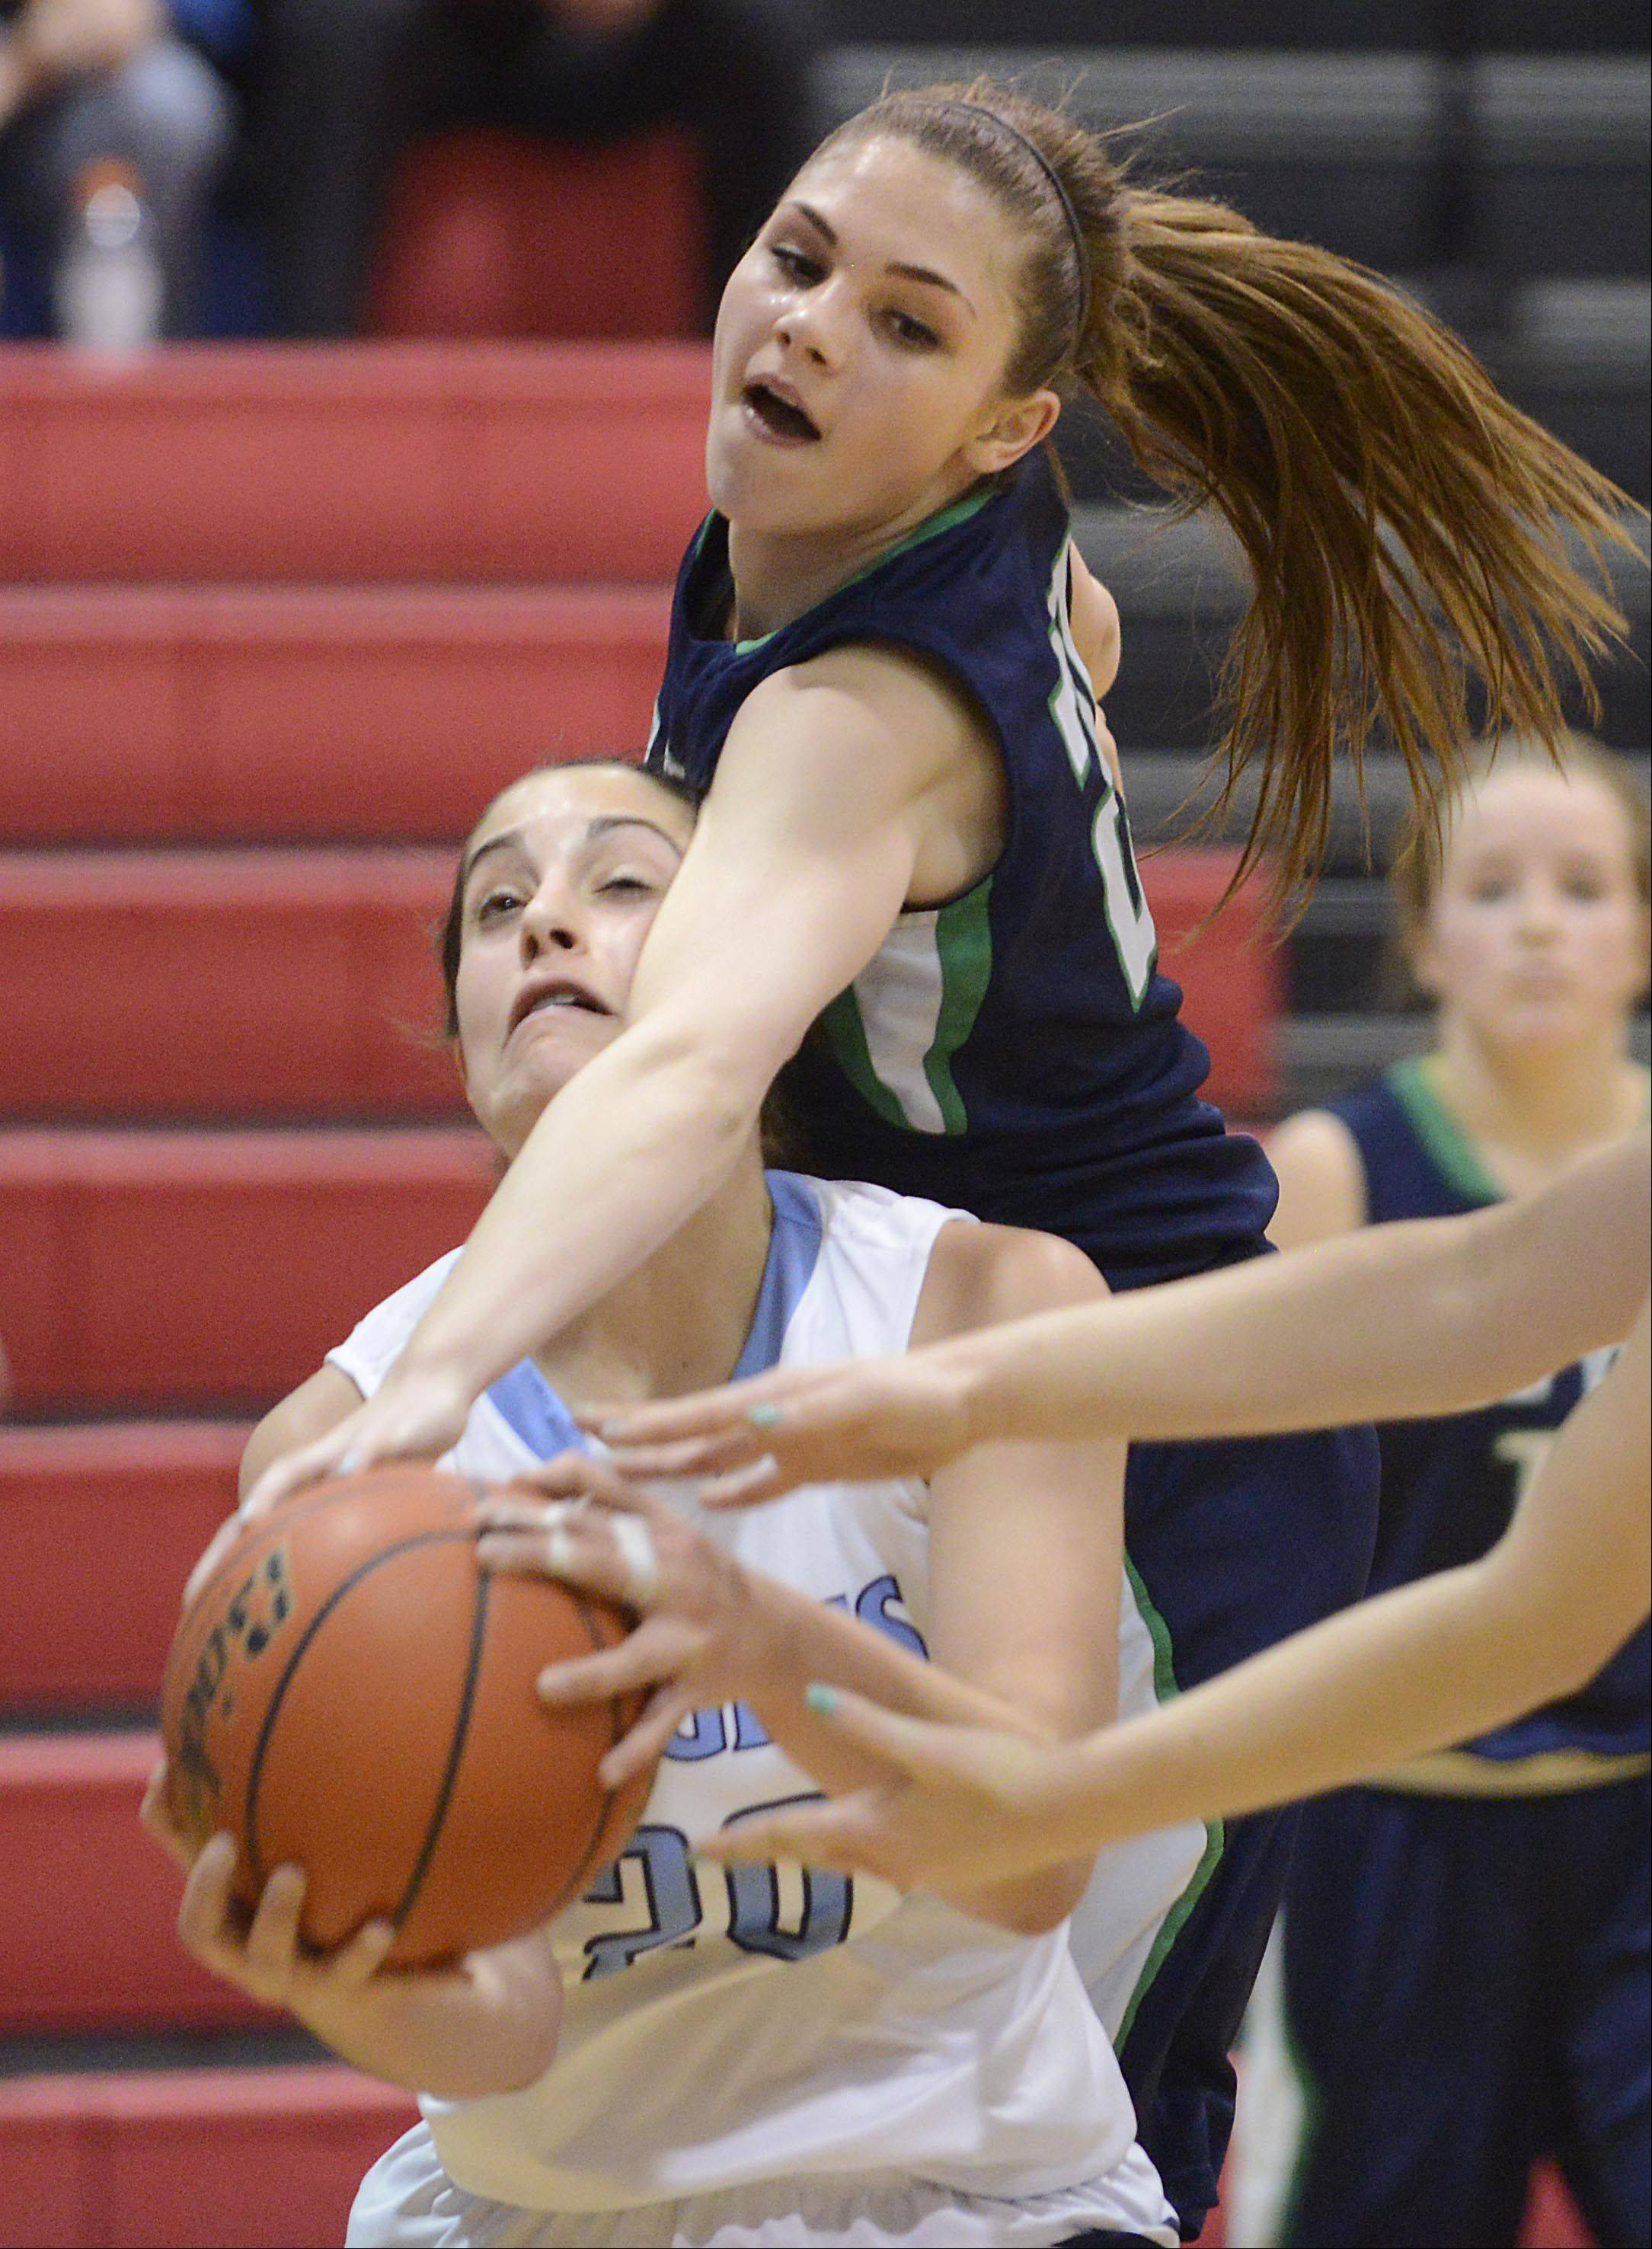 New Trier's Isabella Bosco fouls Prospect's Christina D'Anza.